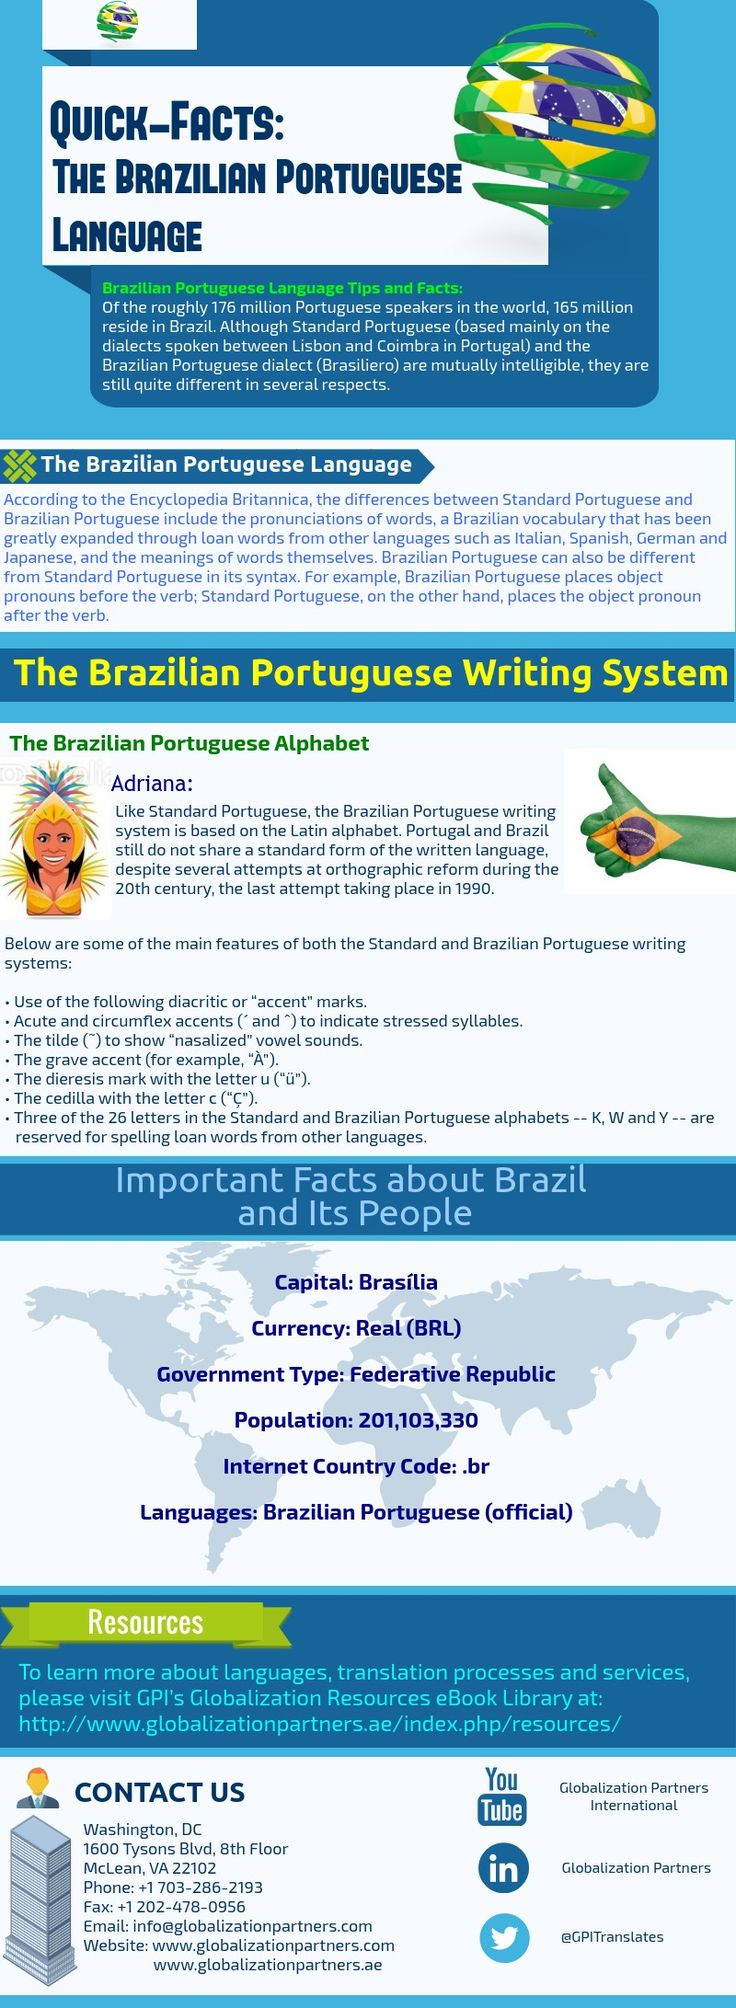 Infographic: Quick facts about Brazil & the Brazilian Portuguese language via @GPITranslates